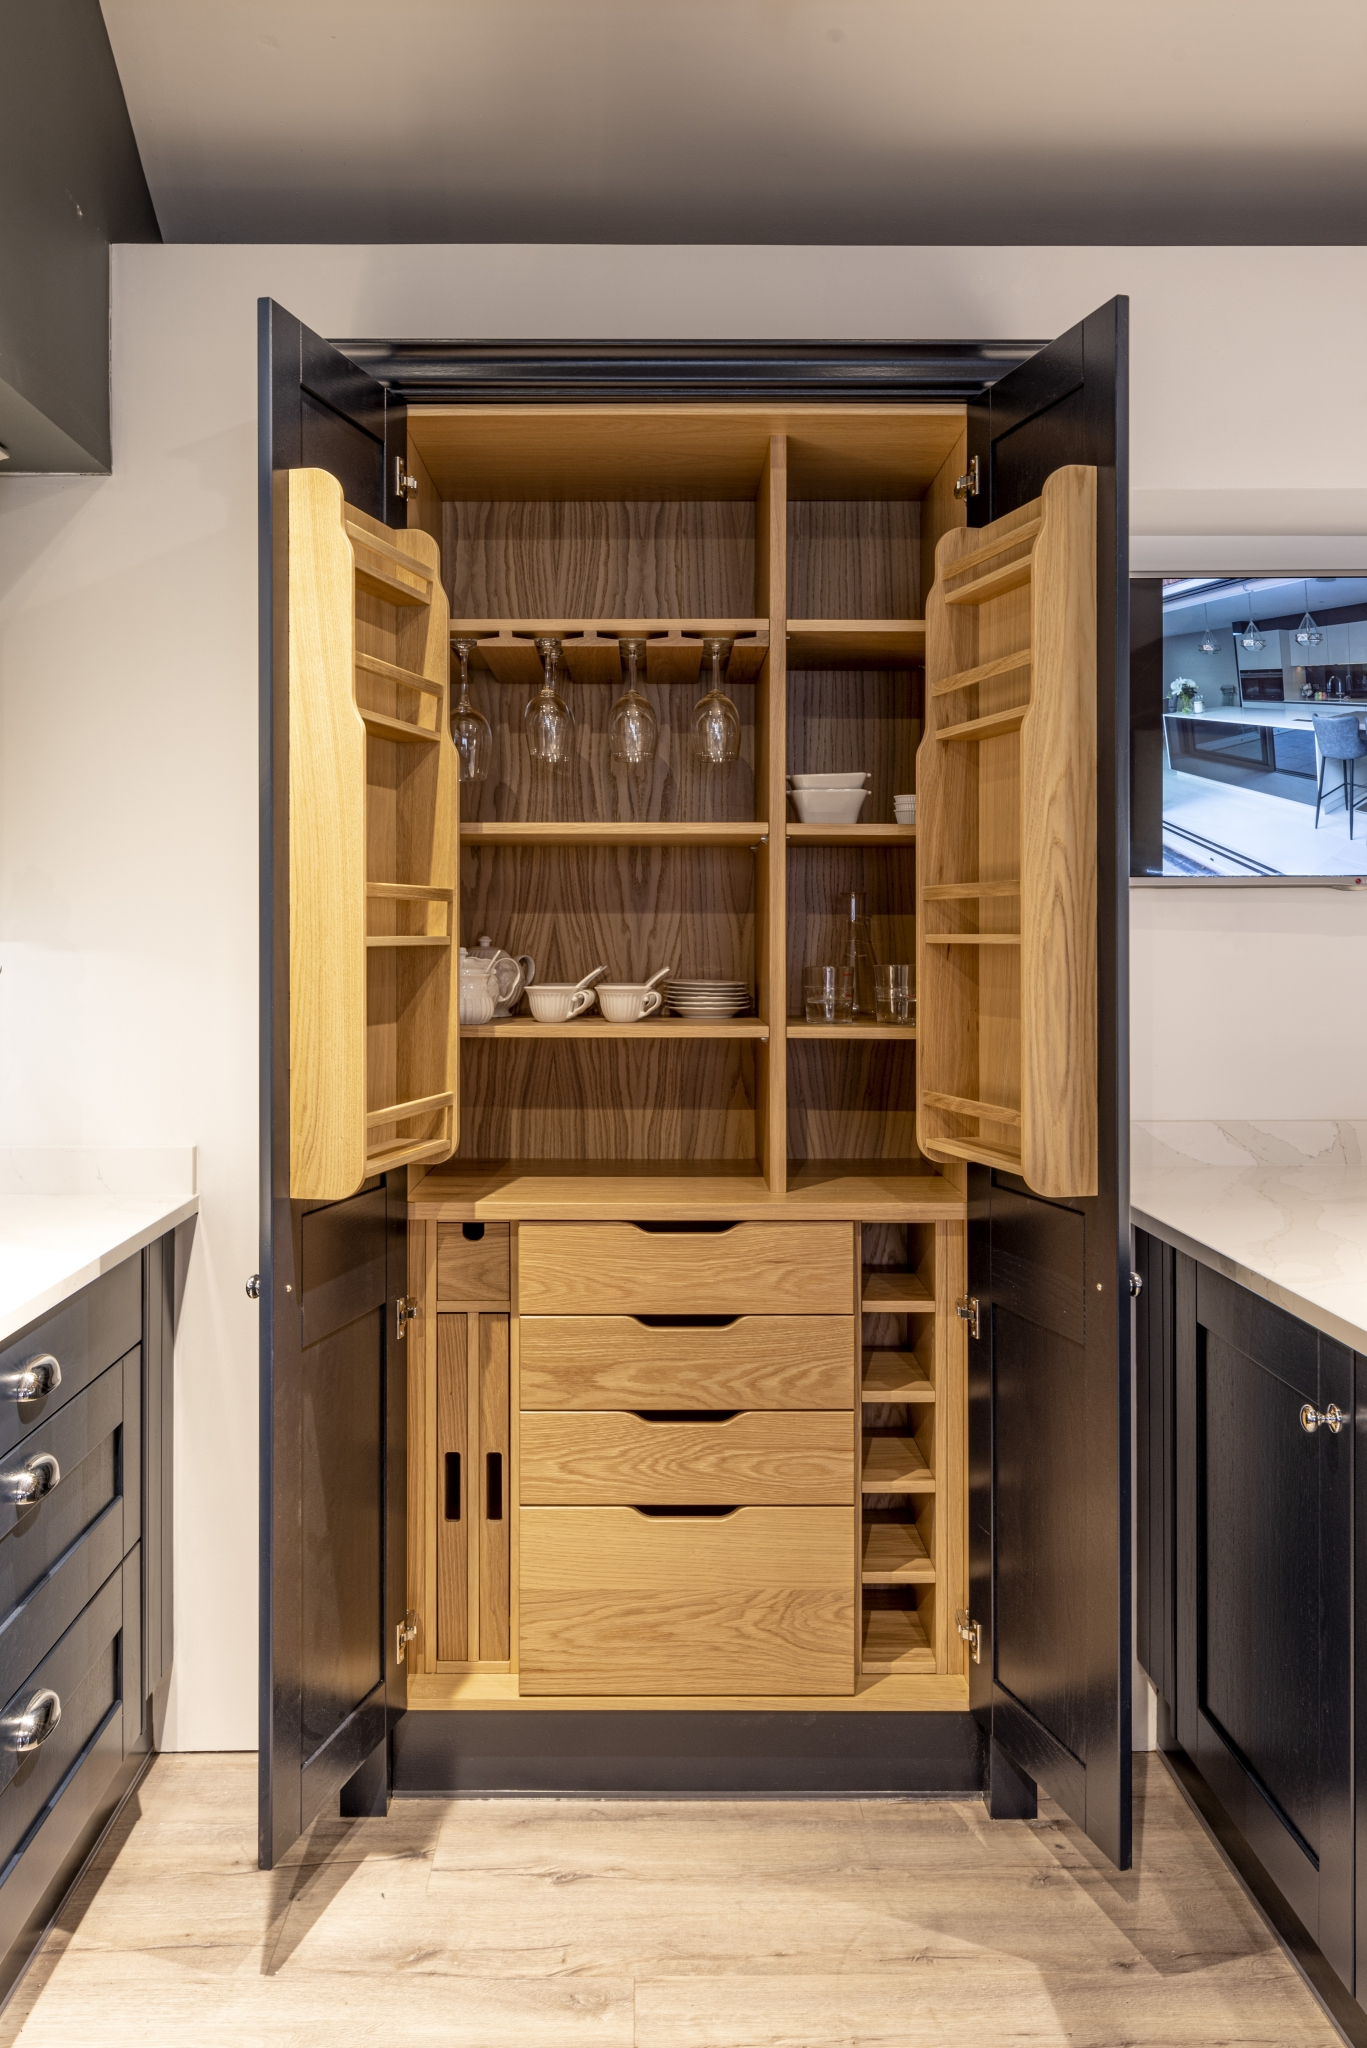 Butler's pantry storage